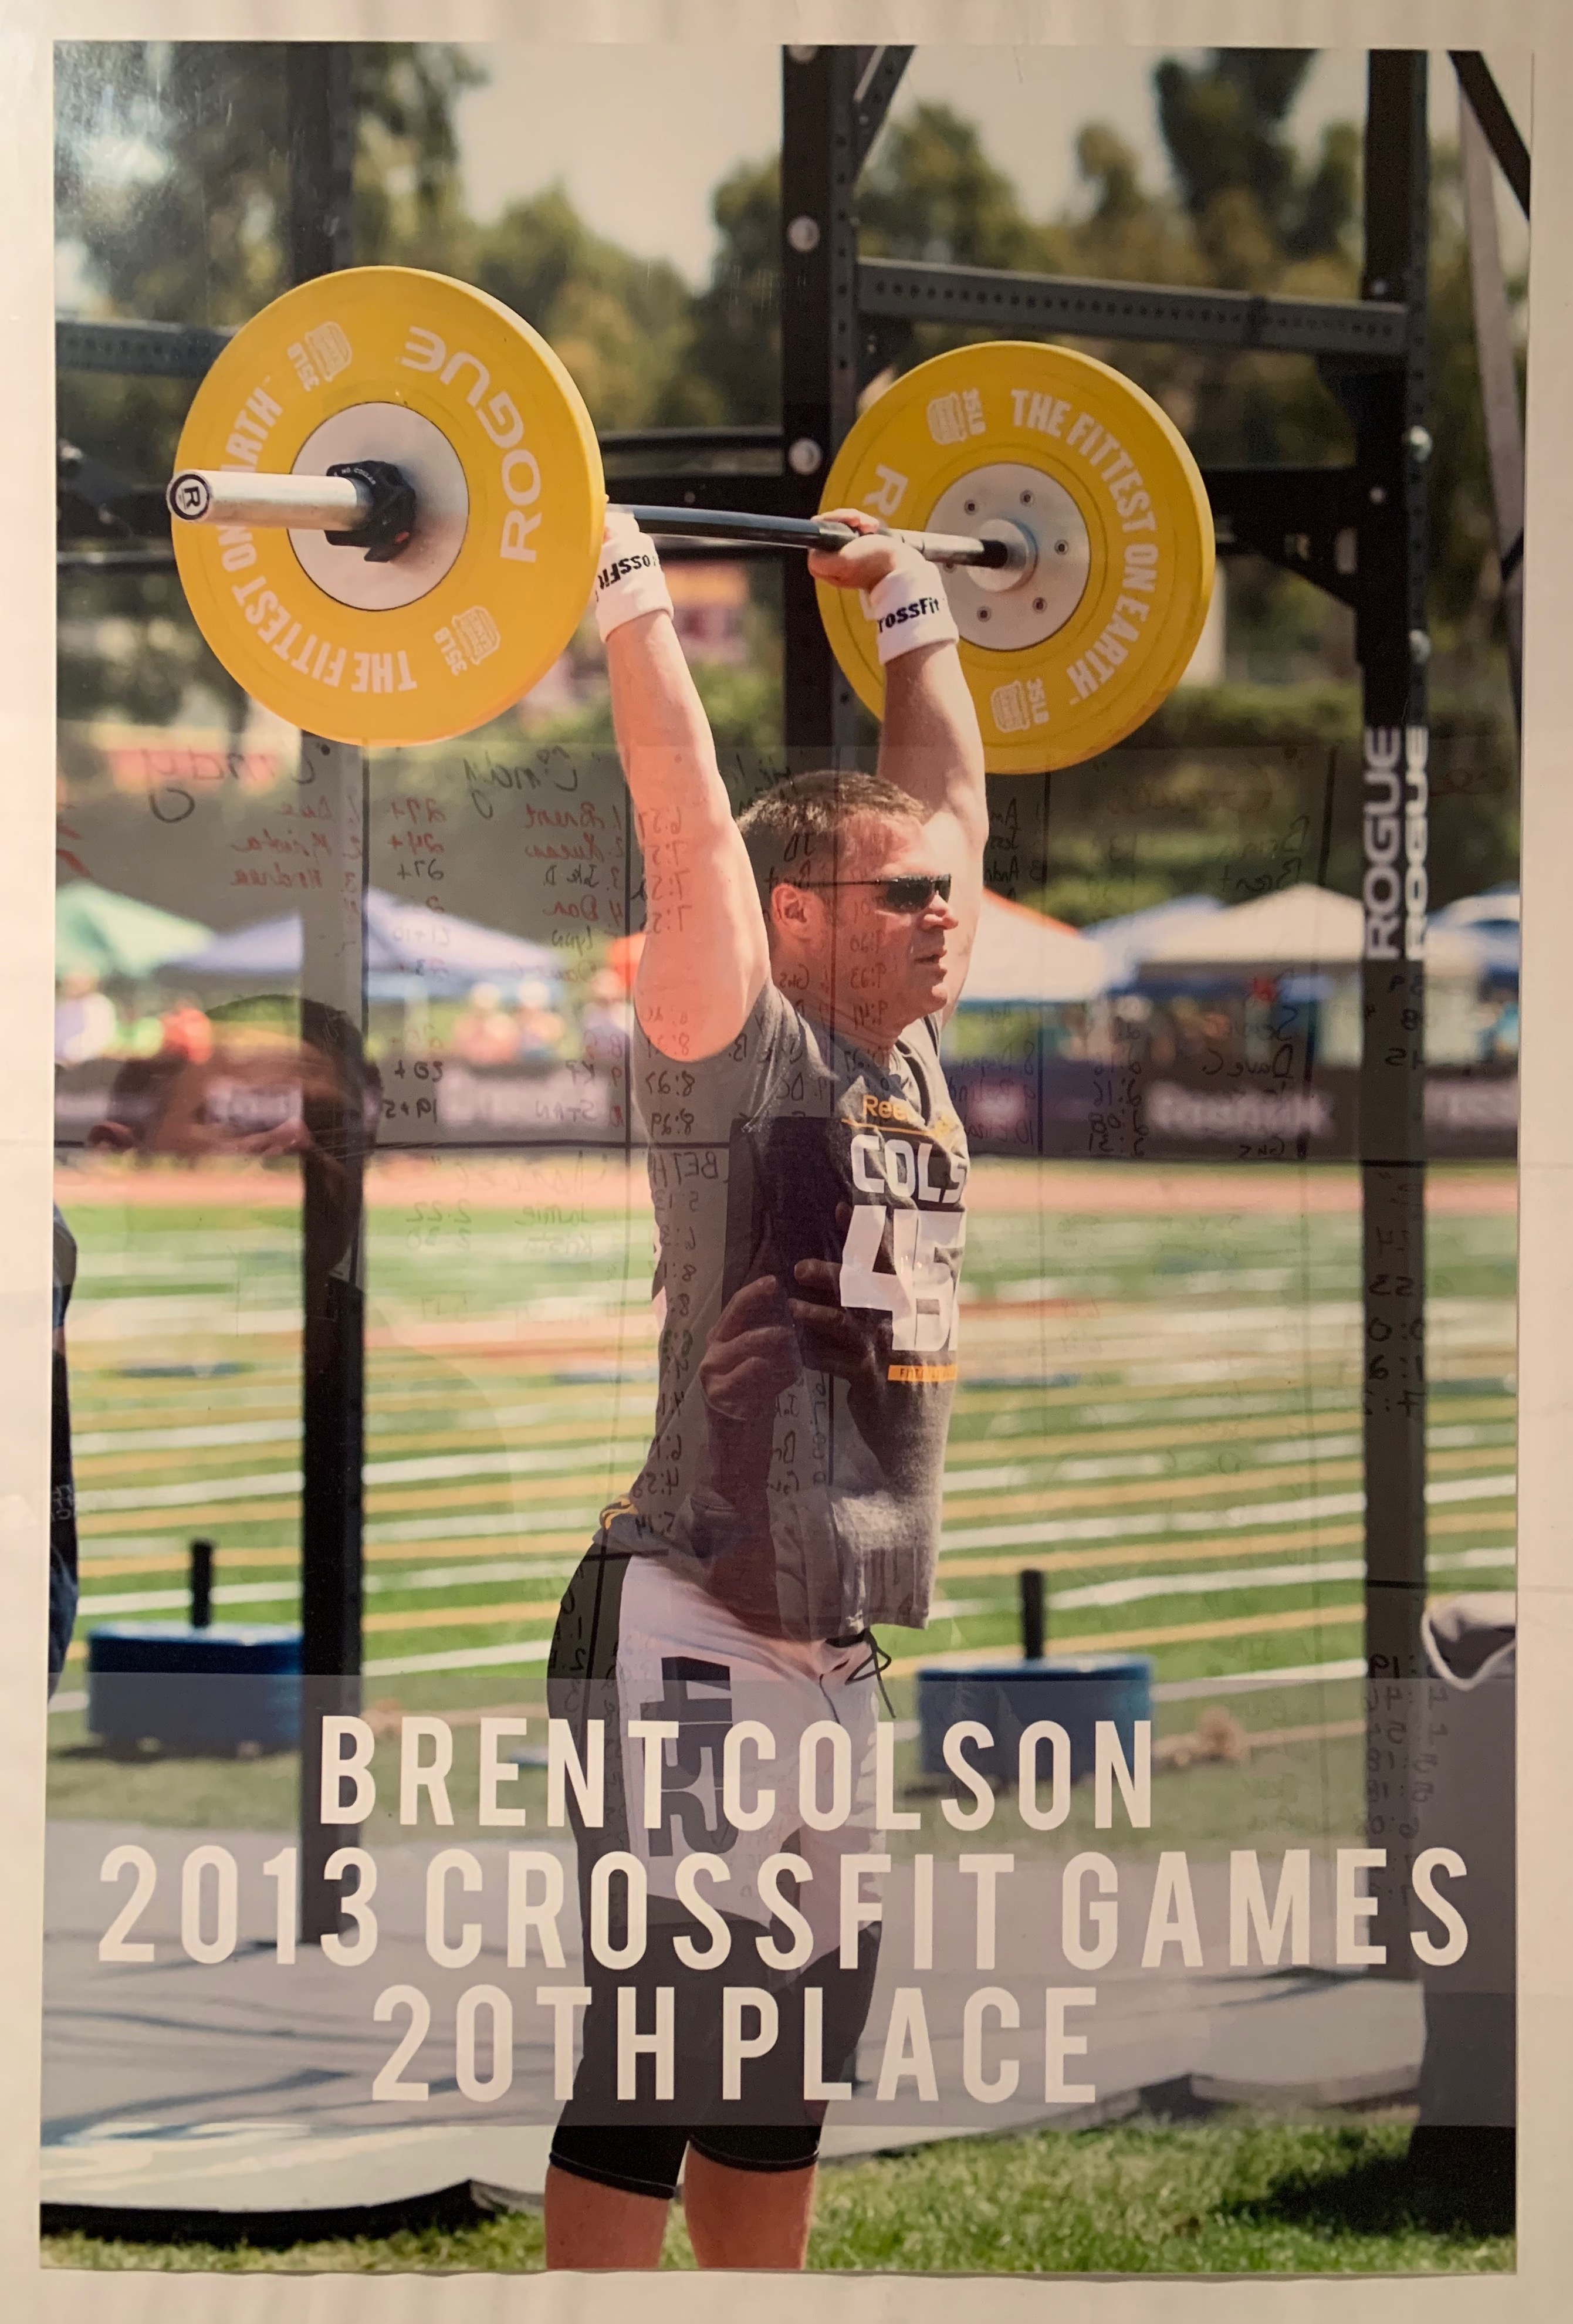 Brent Colson